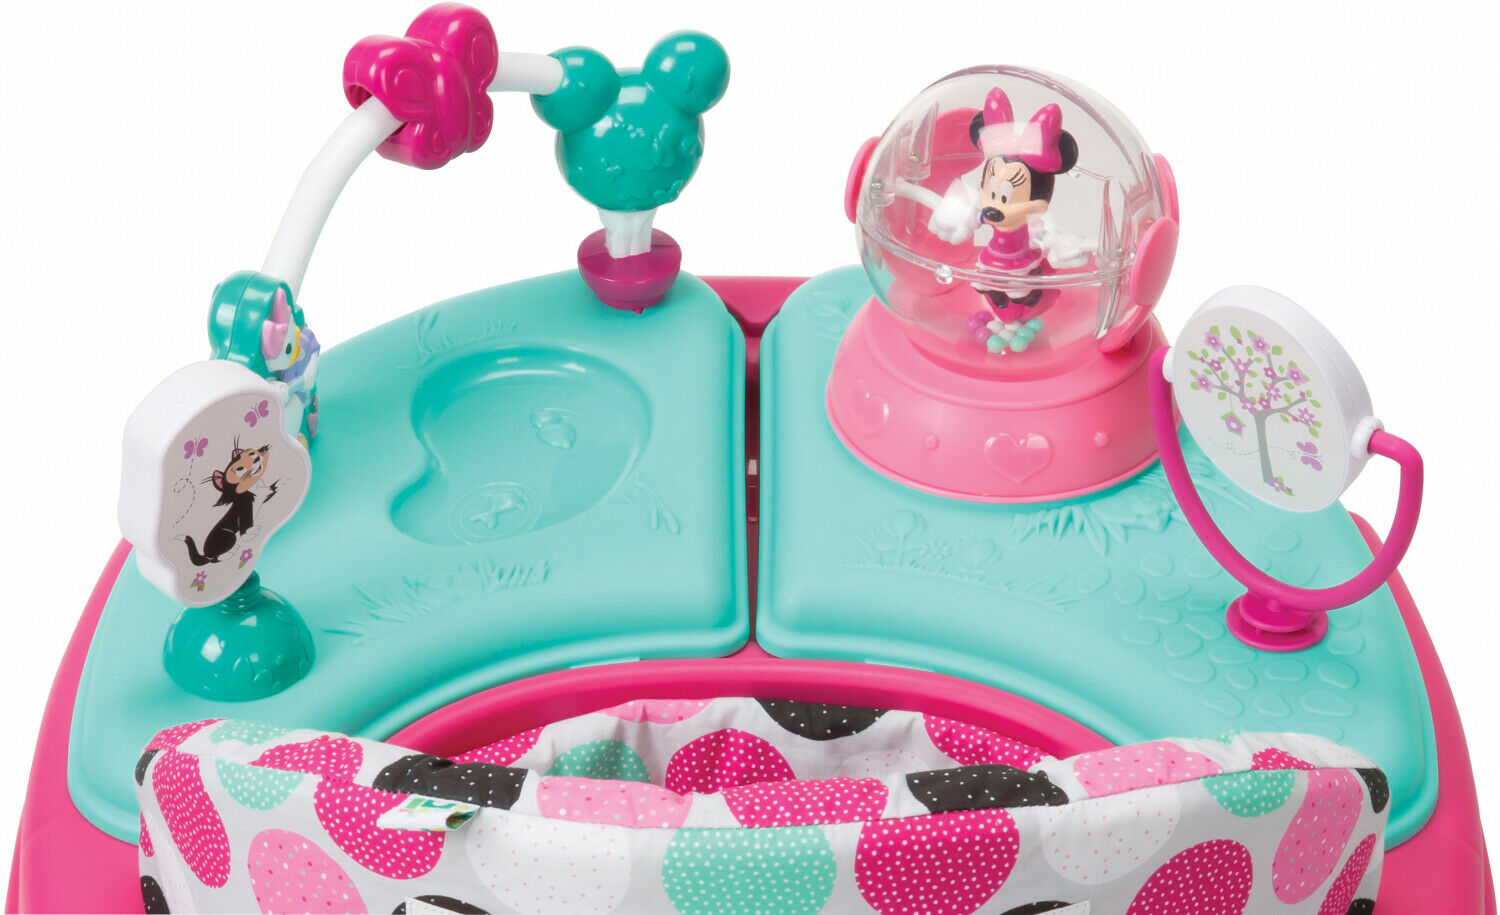 Disney Baby Music Light Walker With Activity Tray For Baby Minnie Dotty Sturdy